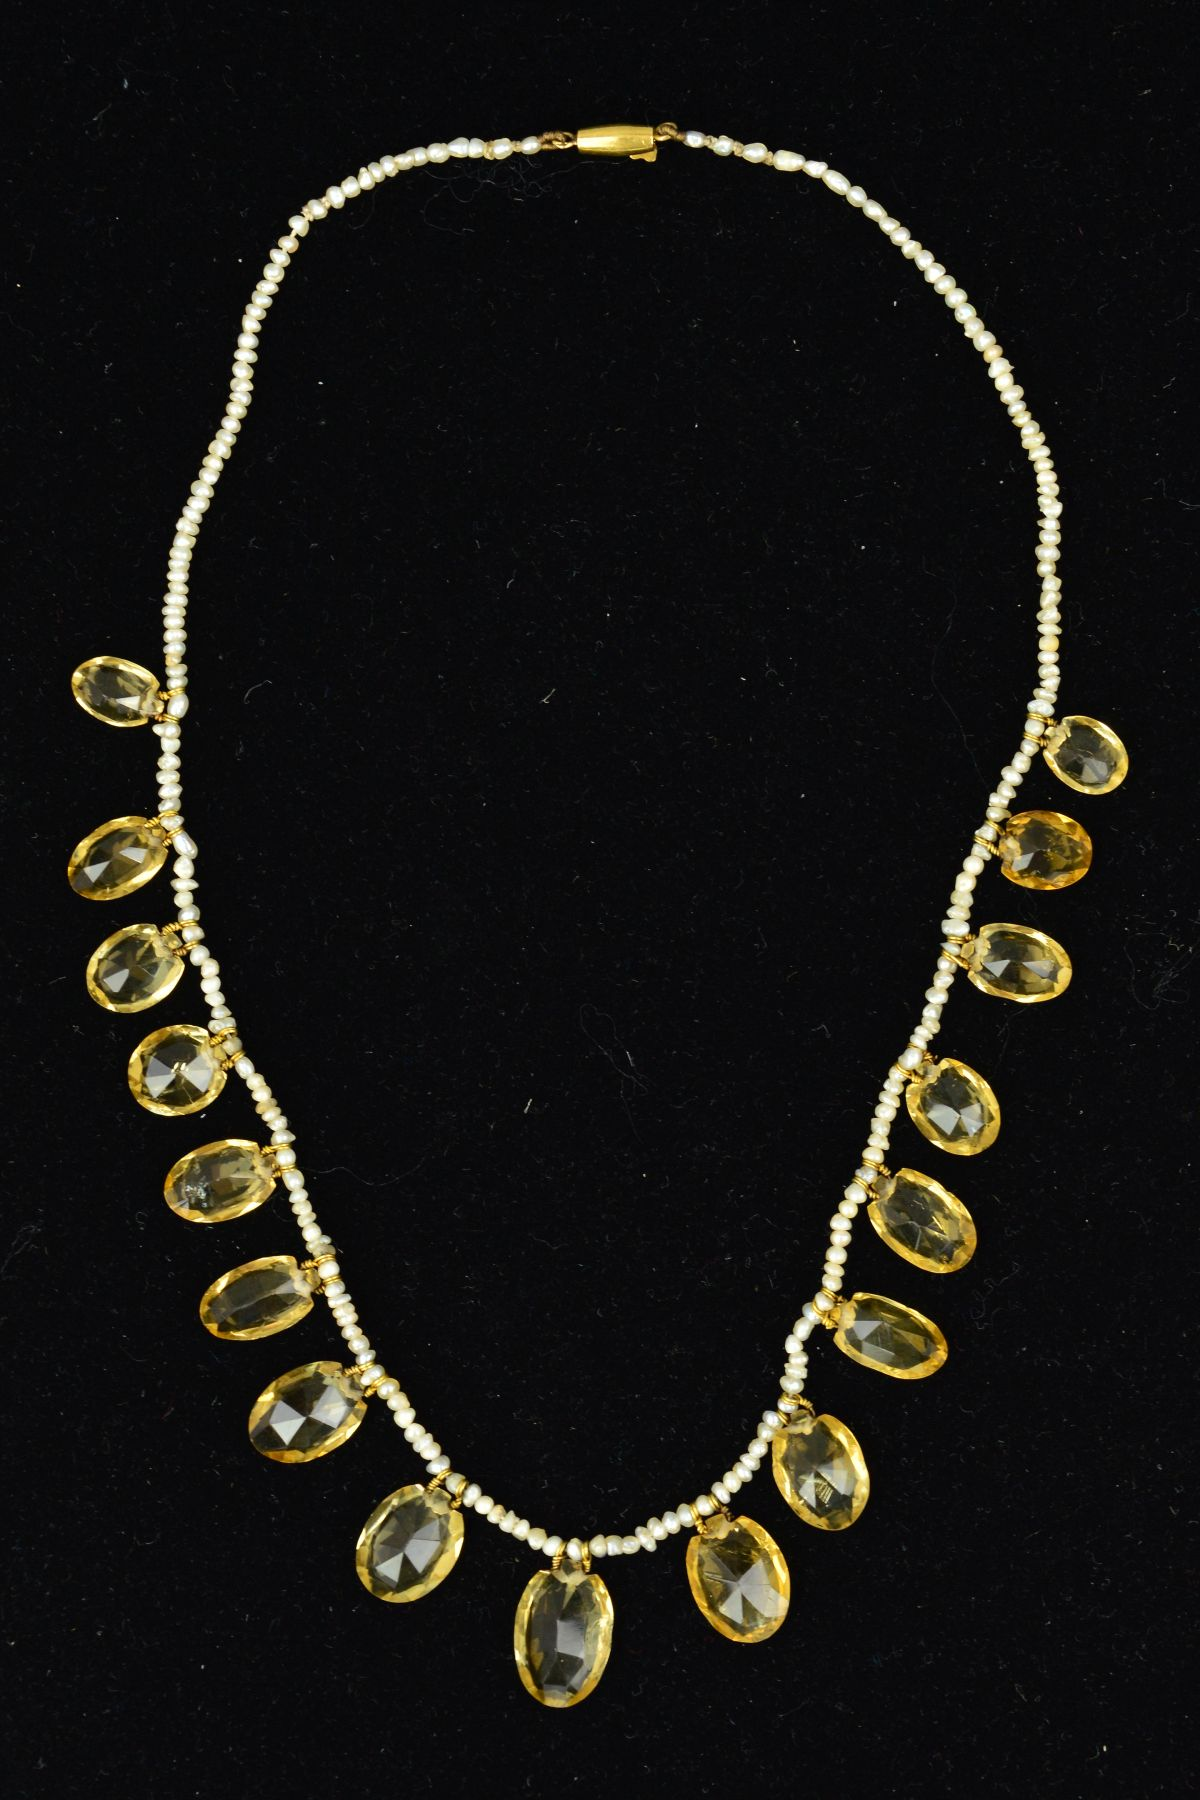 Lot 59 - A SEED PEARL AND CITRINE GRADUATED NECKLET, comprised of oval mixed cut citrines graduating in